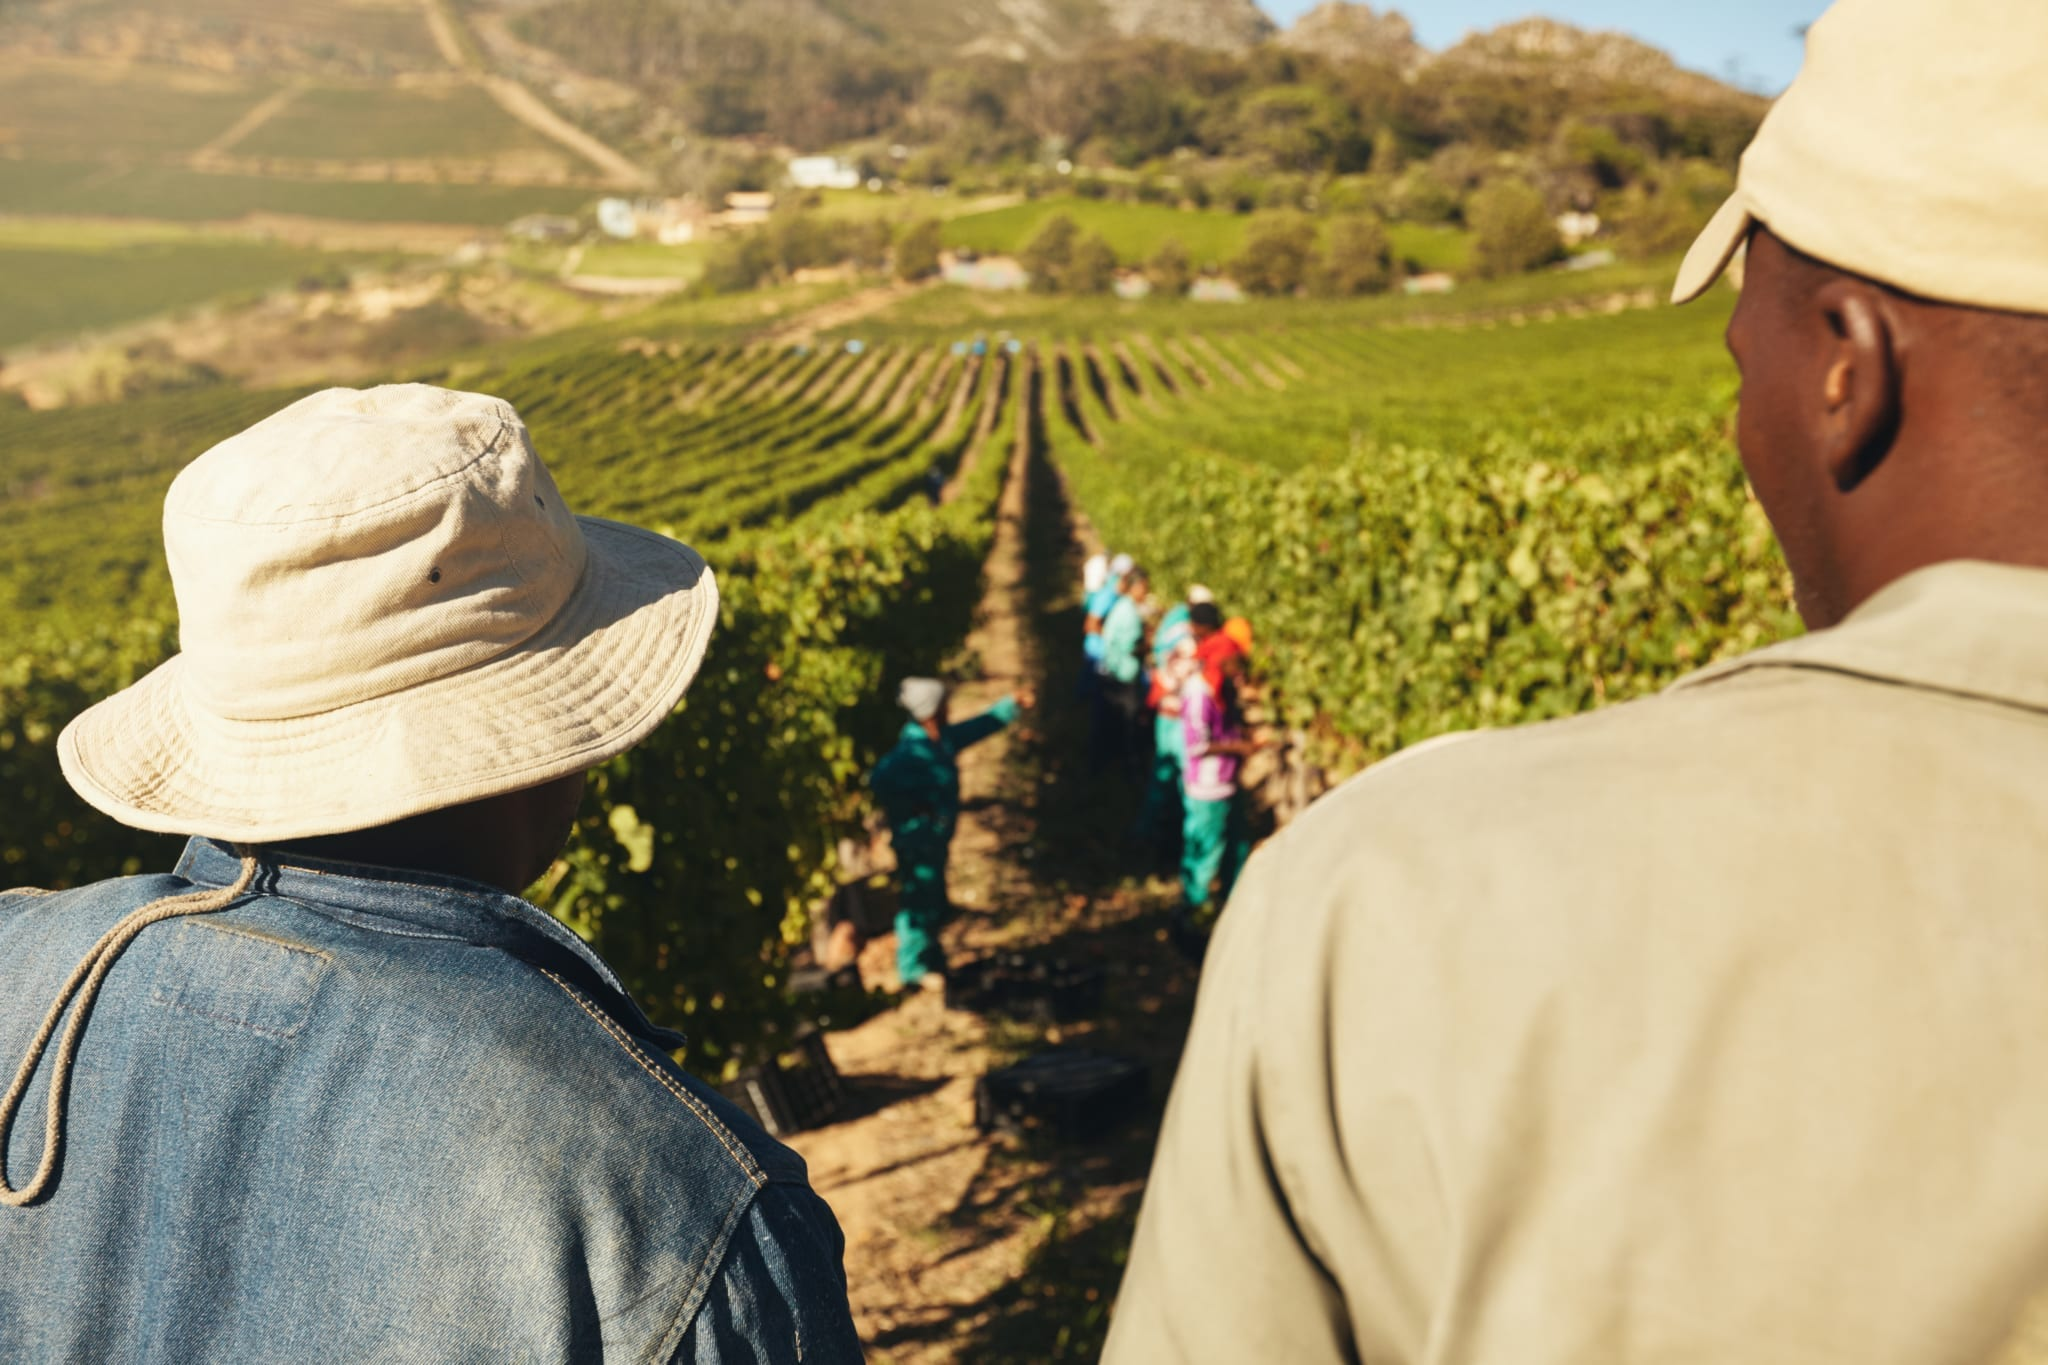 Rear view of two worker standing and looking at vineyard. People working in vineyard. Workers harvesting grapes from rows of vines in grape farm.